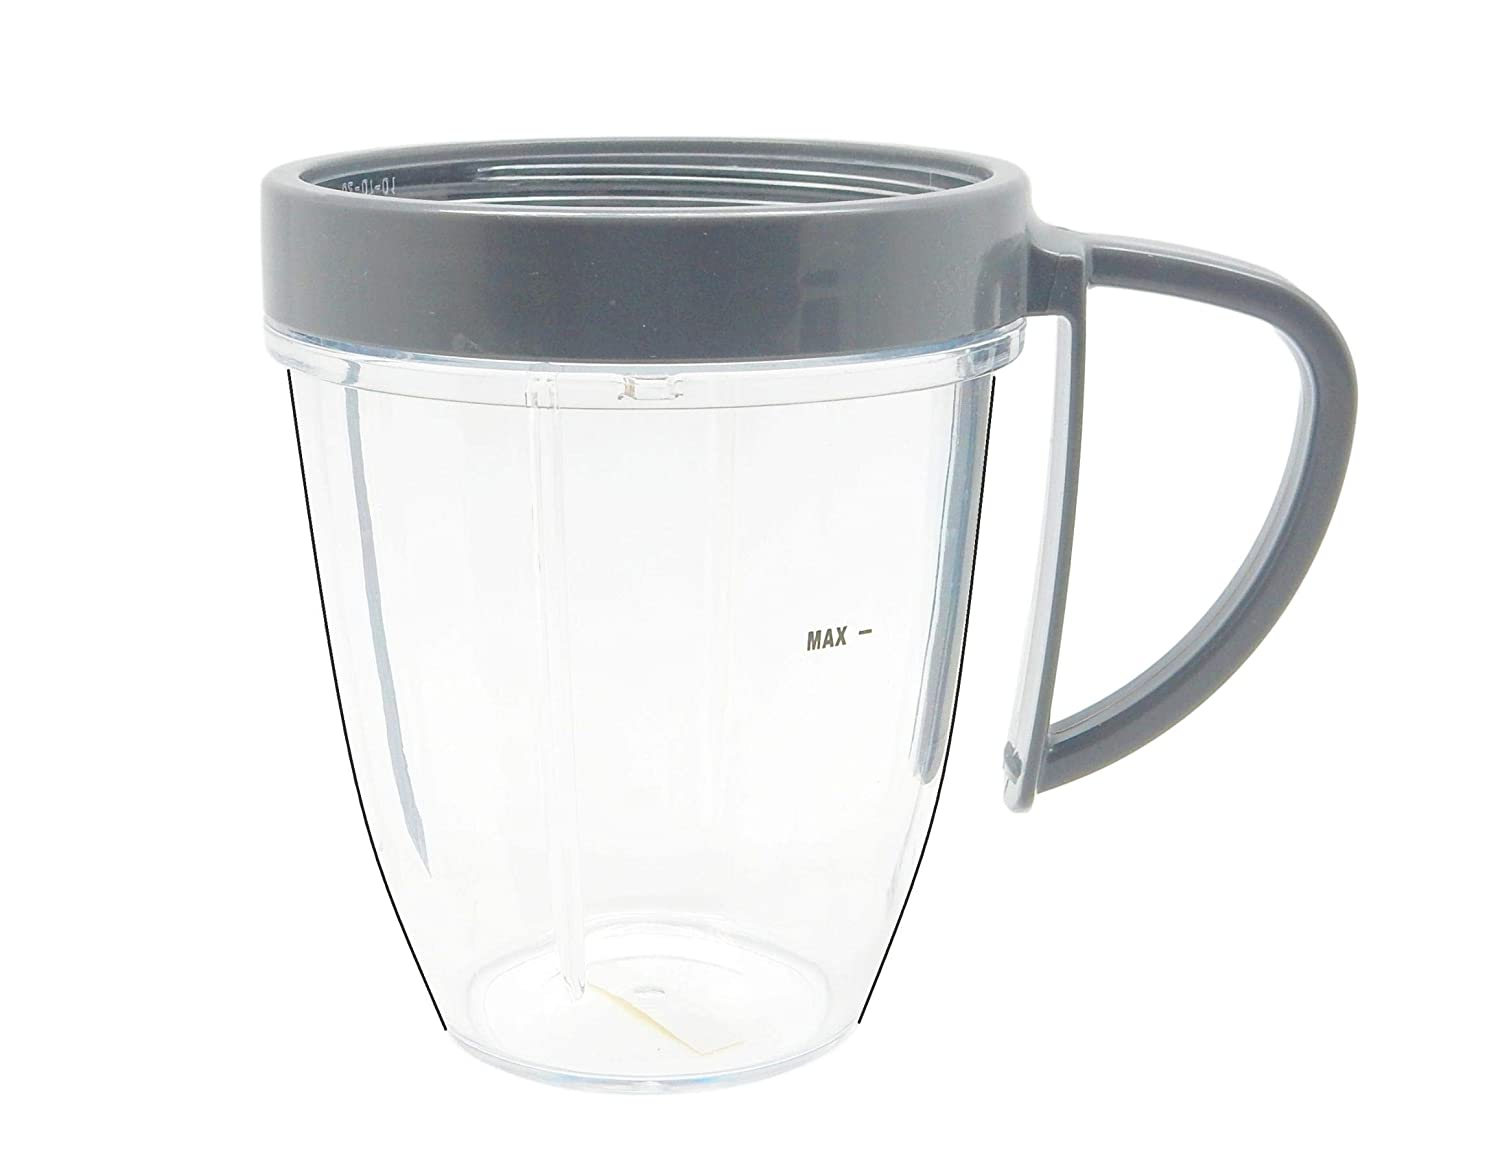 NutriBullet 18oz with comfort handle All Original Accessories, Replacement Blender Parts Gray x1 COMINHKPR96352